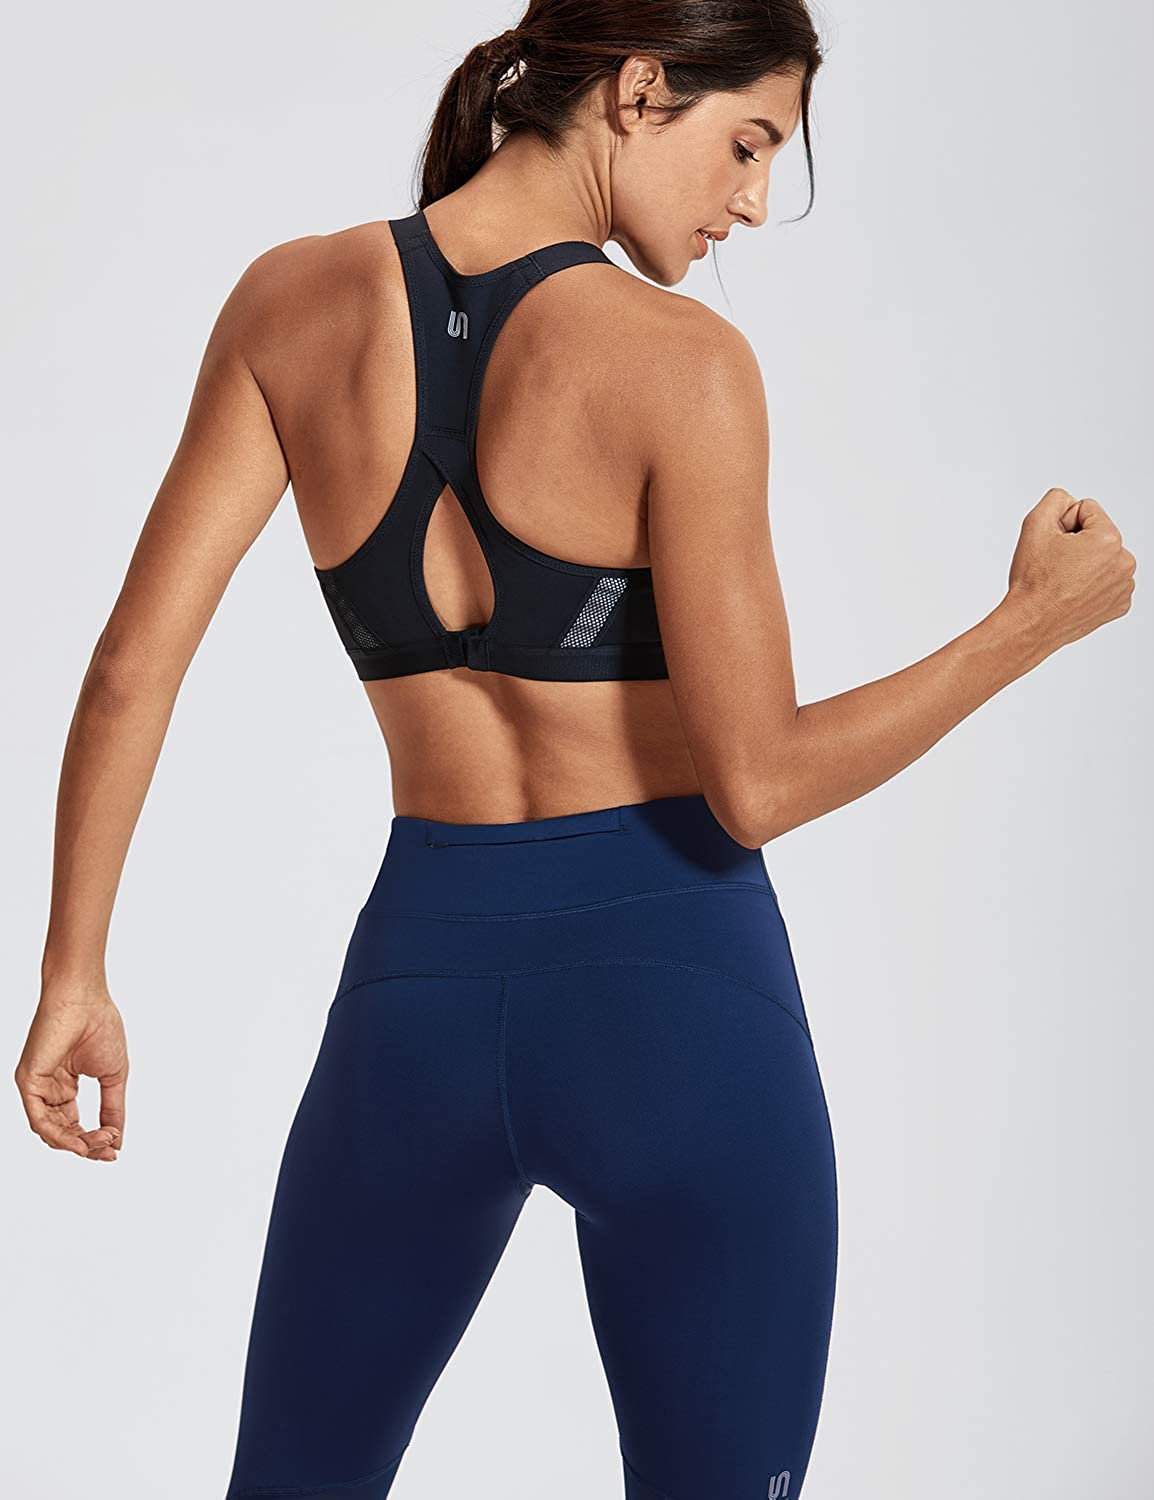 SYROKAN Womens Full Coverage Racerback High Impact Workout Firm Support Padded Push Up Sports Bra